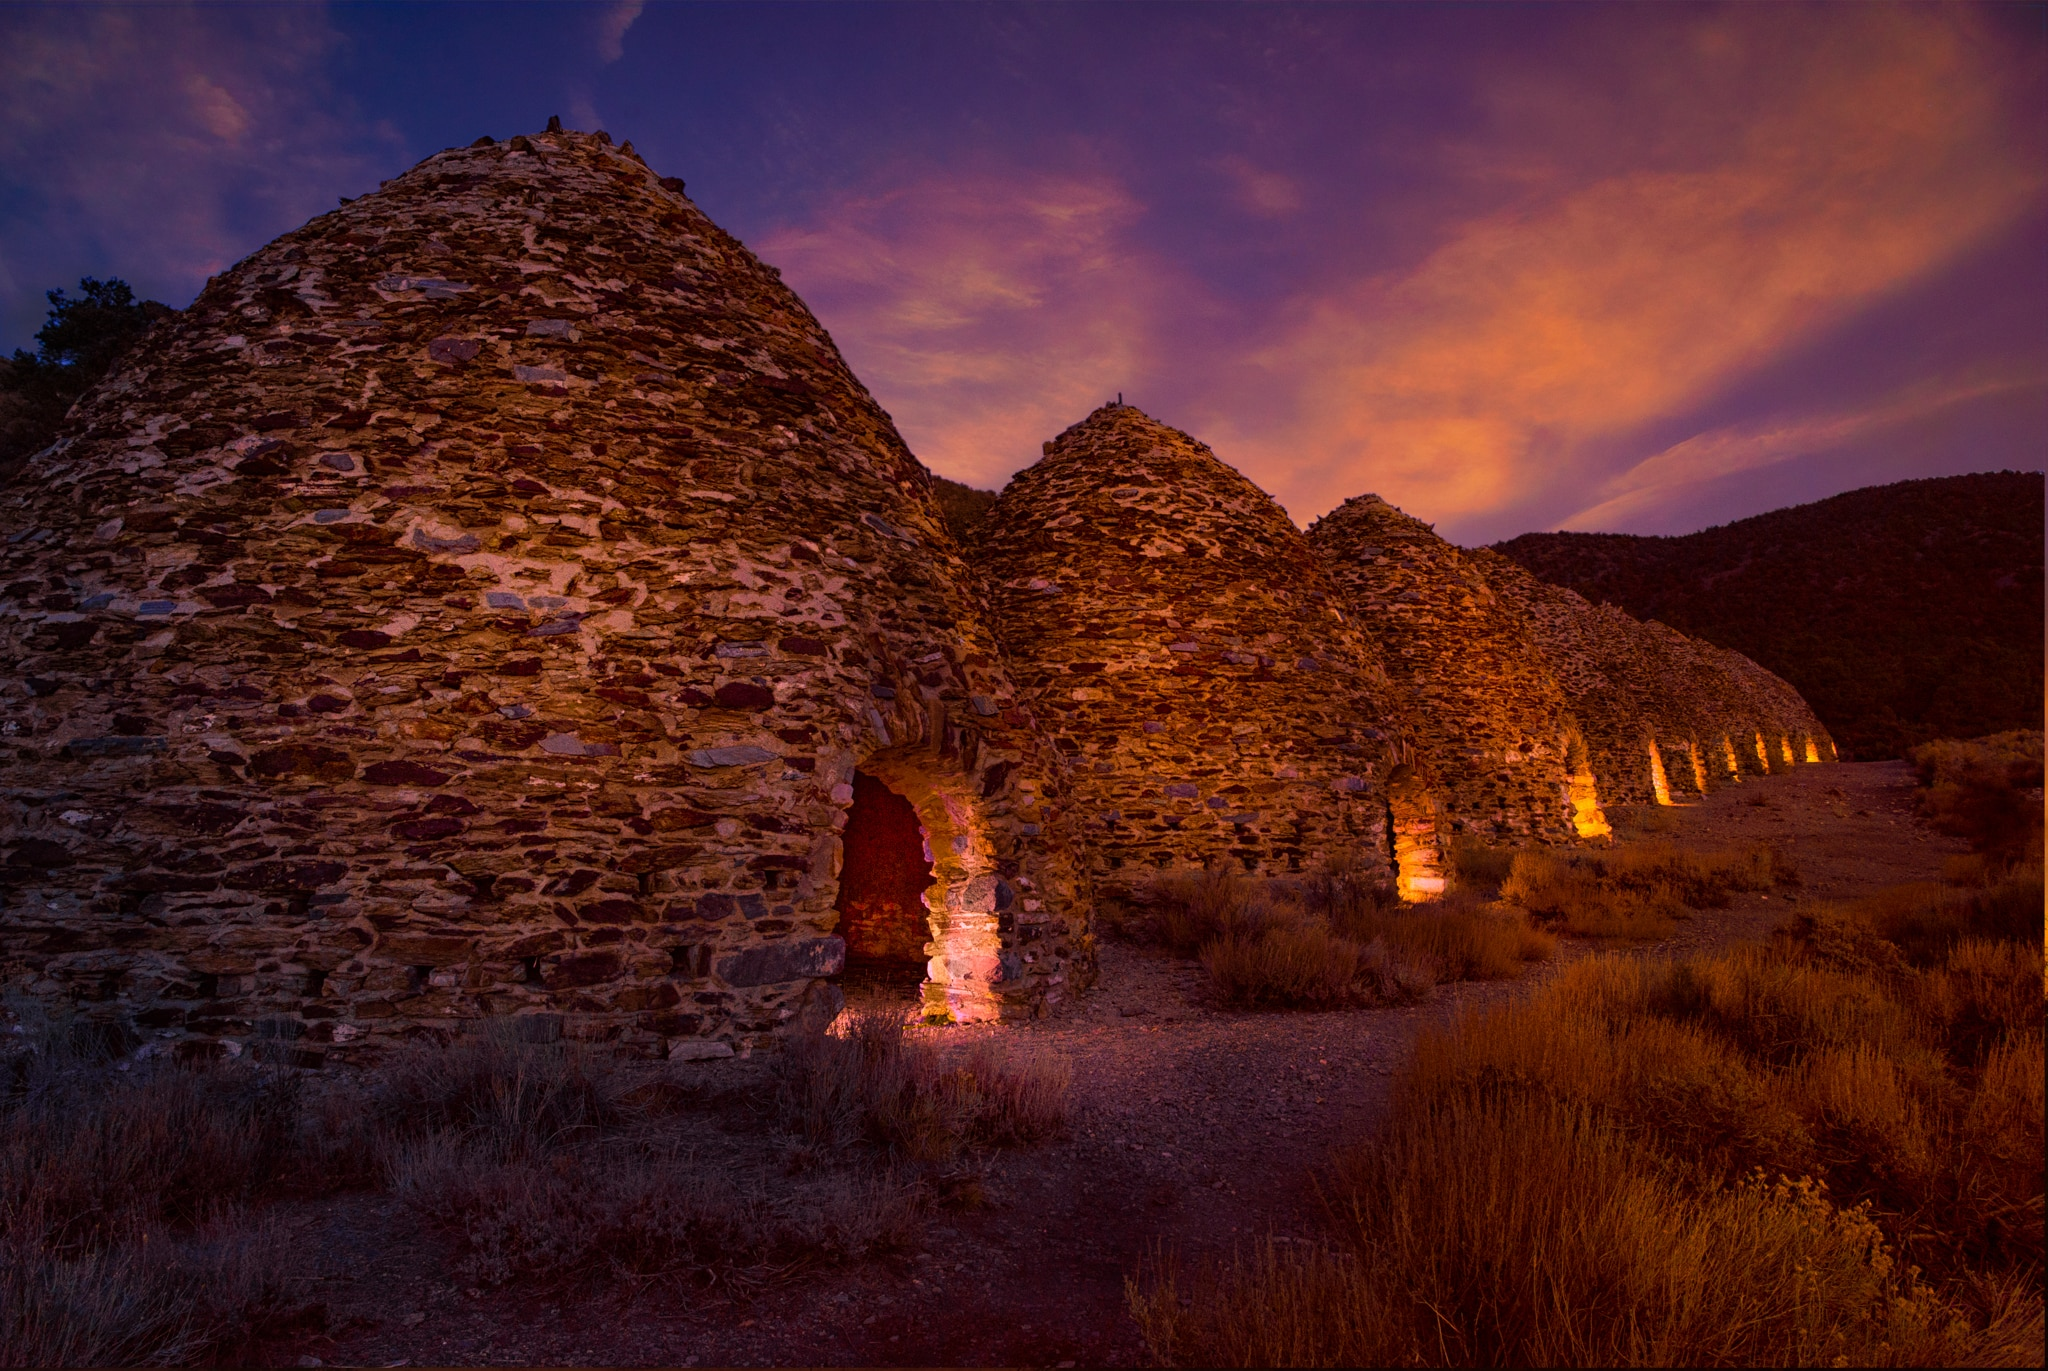 After sunset, lights illuminate the openings of the ten charcoal kilns located at the end of Wildrose Canyon in Death Valley National Park, California.